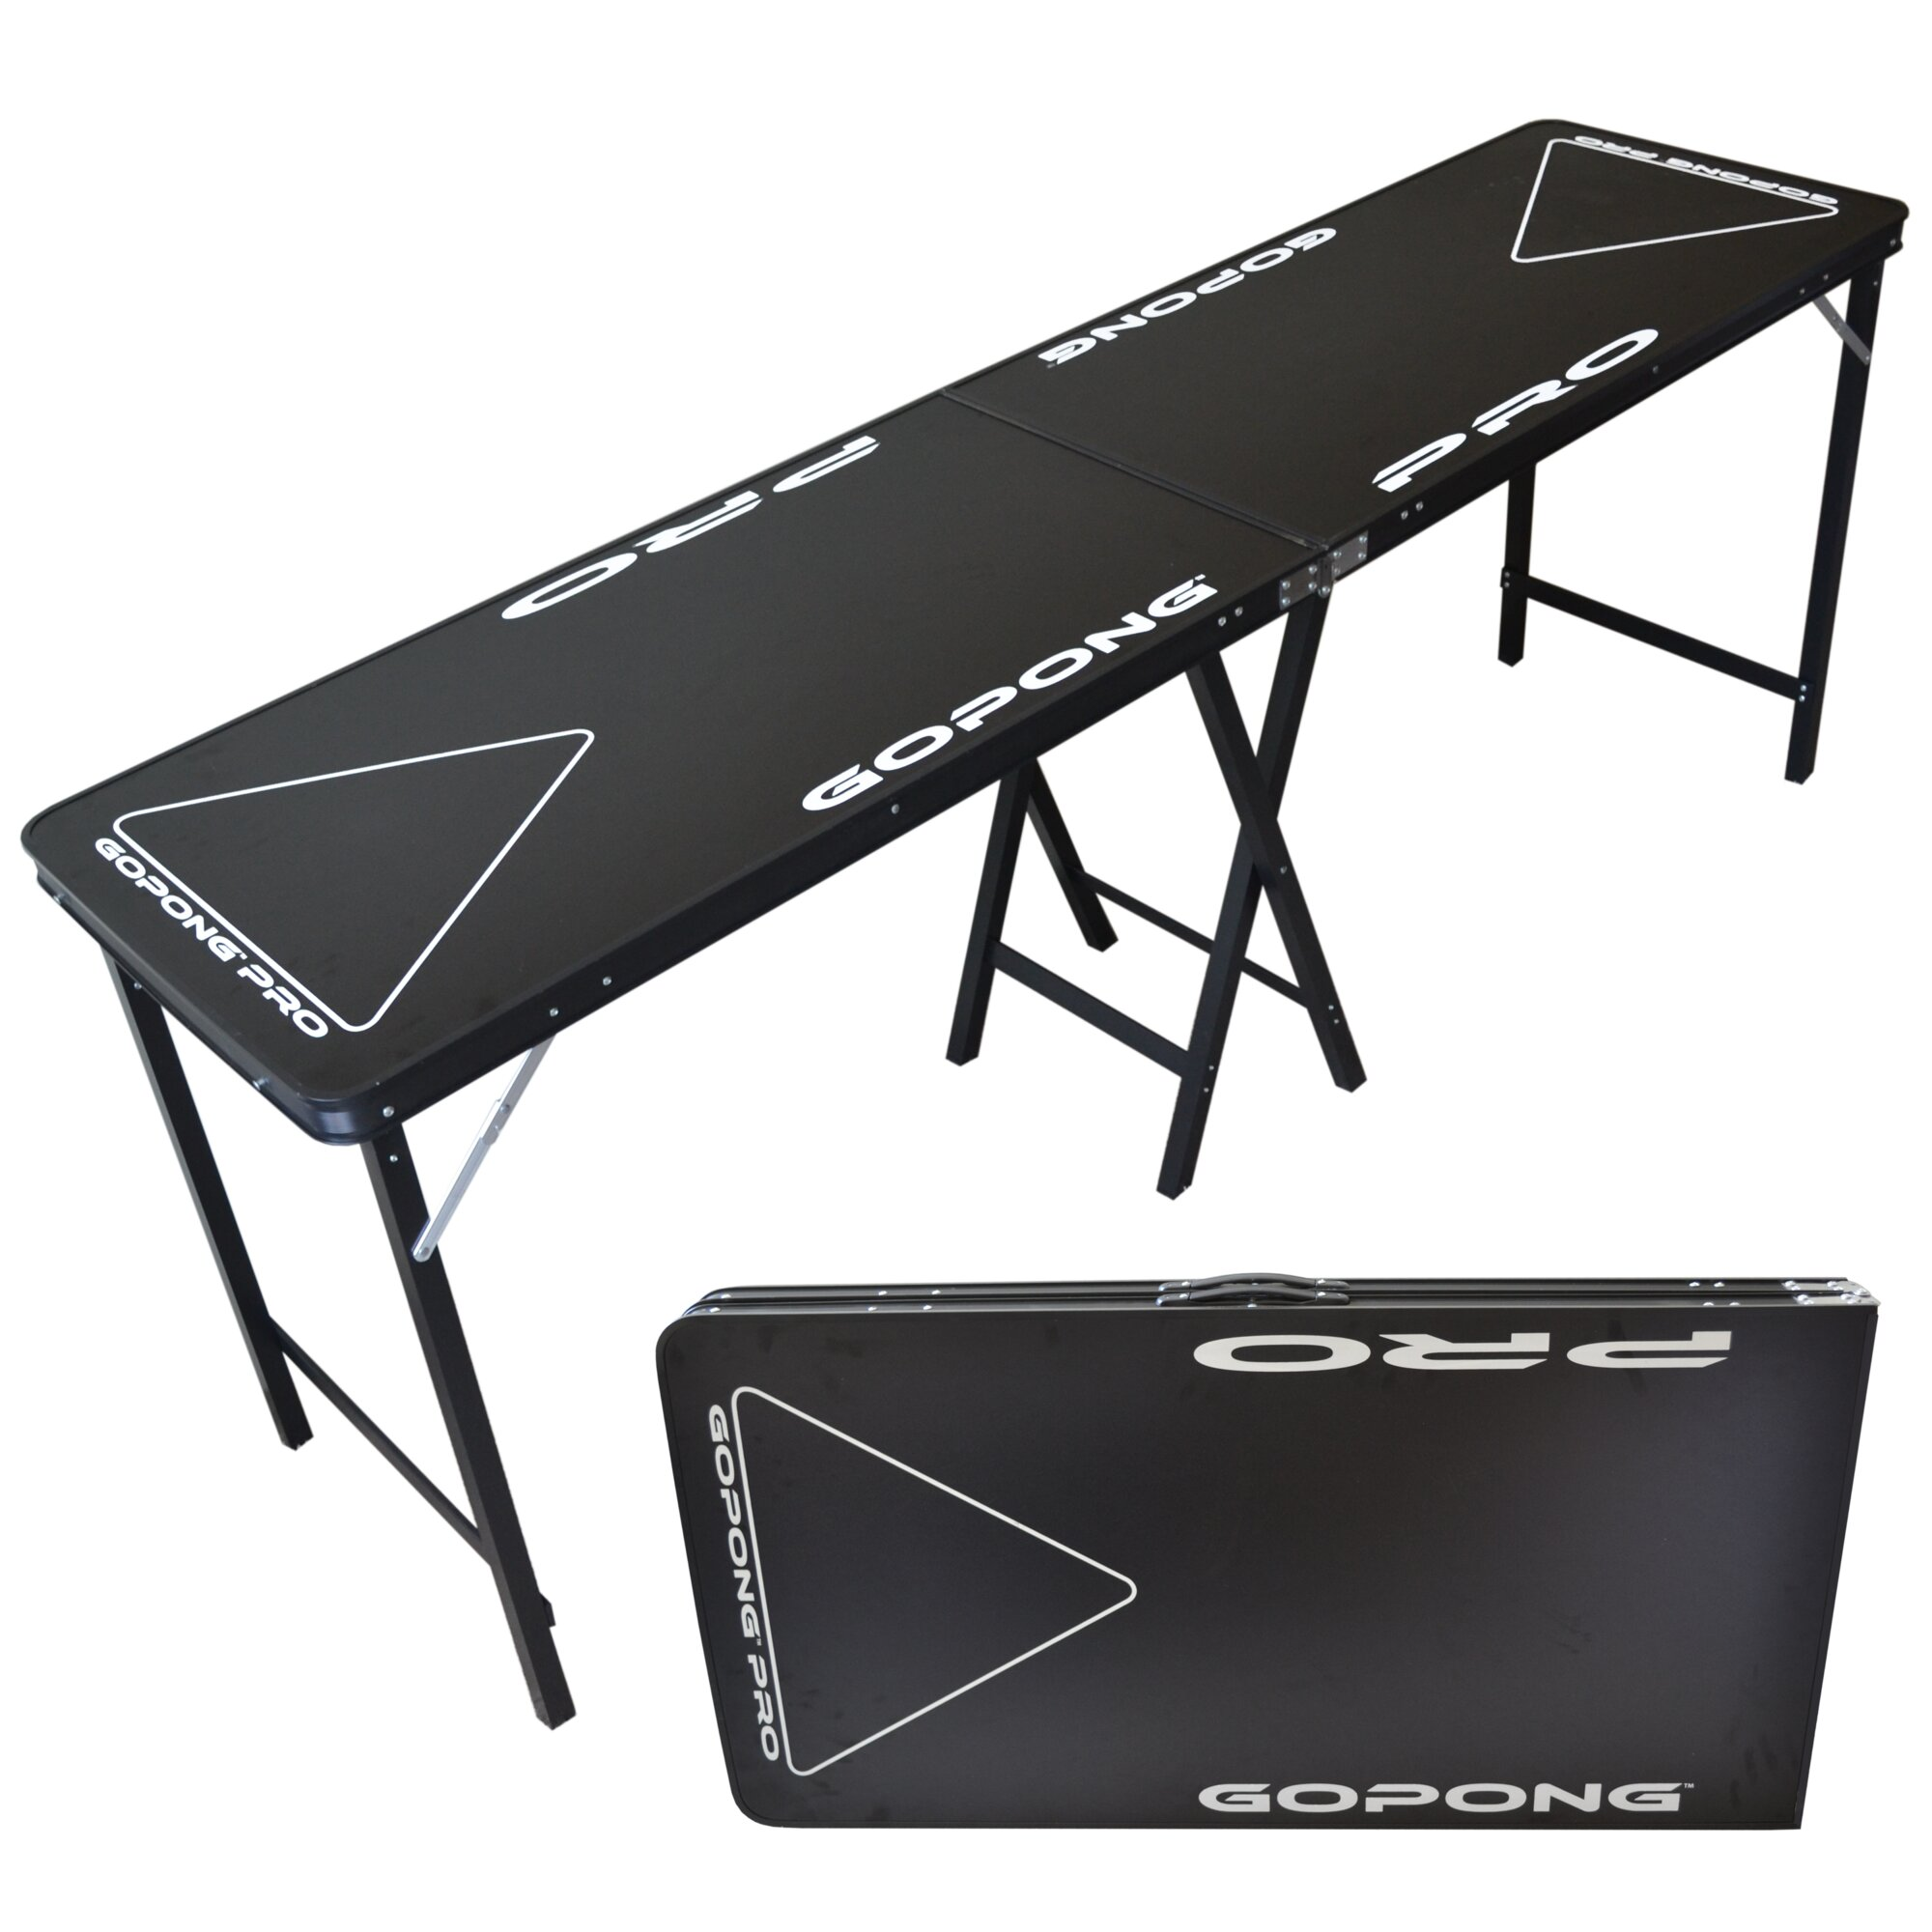 Beer pong table dimensions - Pro 8 Premium Beer Pong Table For Bars